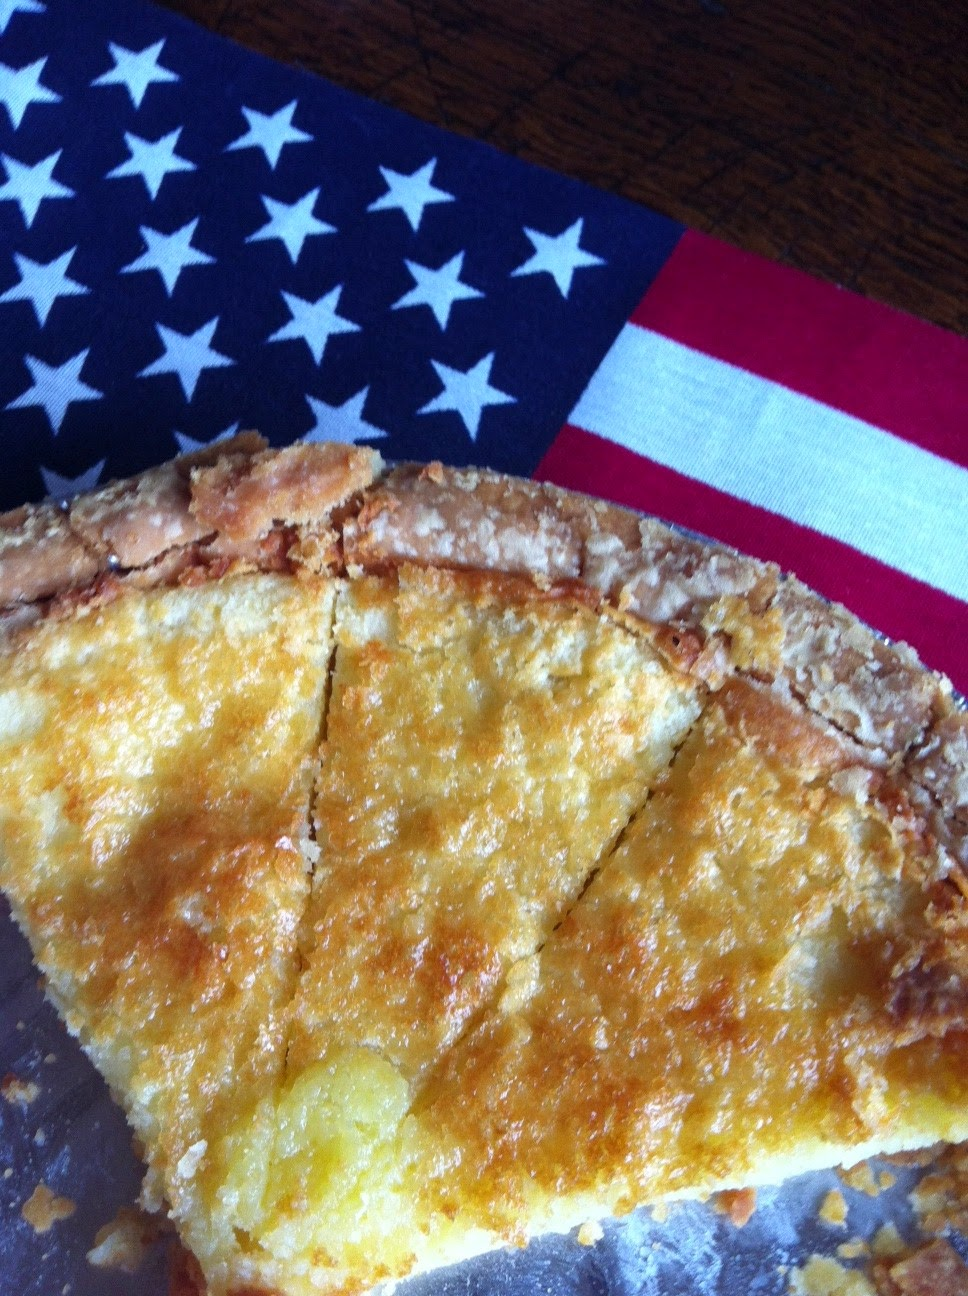 Buttermilk Pie for the 4th of July